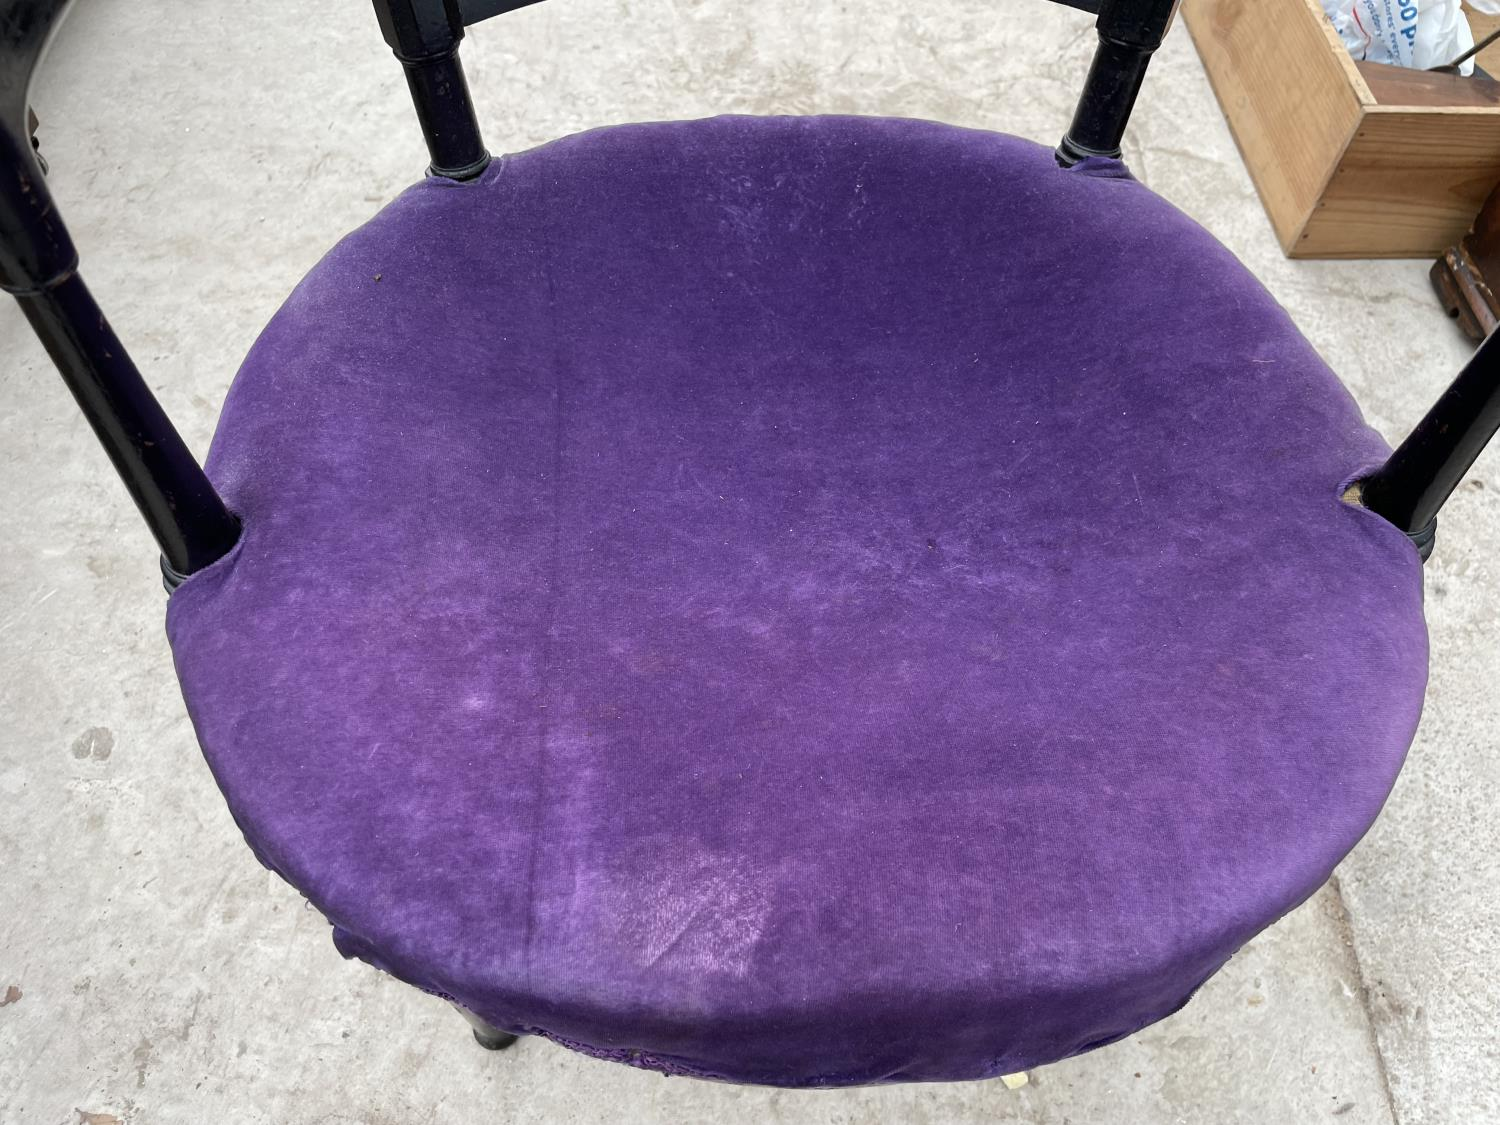 AN ARTS & CRAFTS BLACK PAINTED ELBOW CHAIR A/F - Image 3 of 4